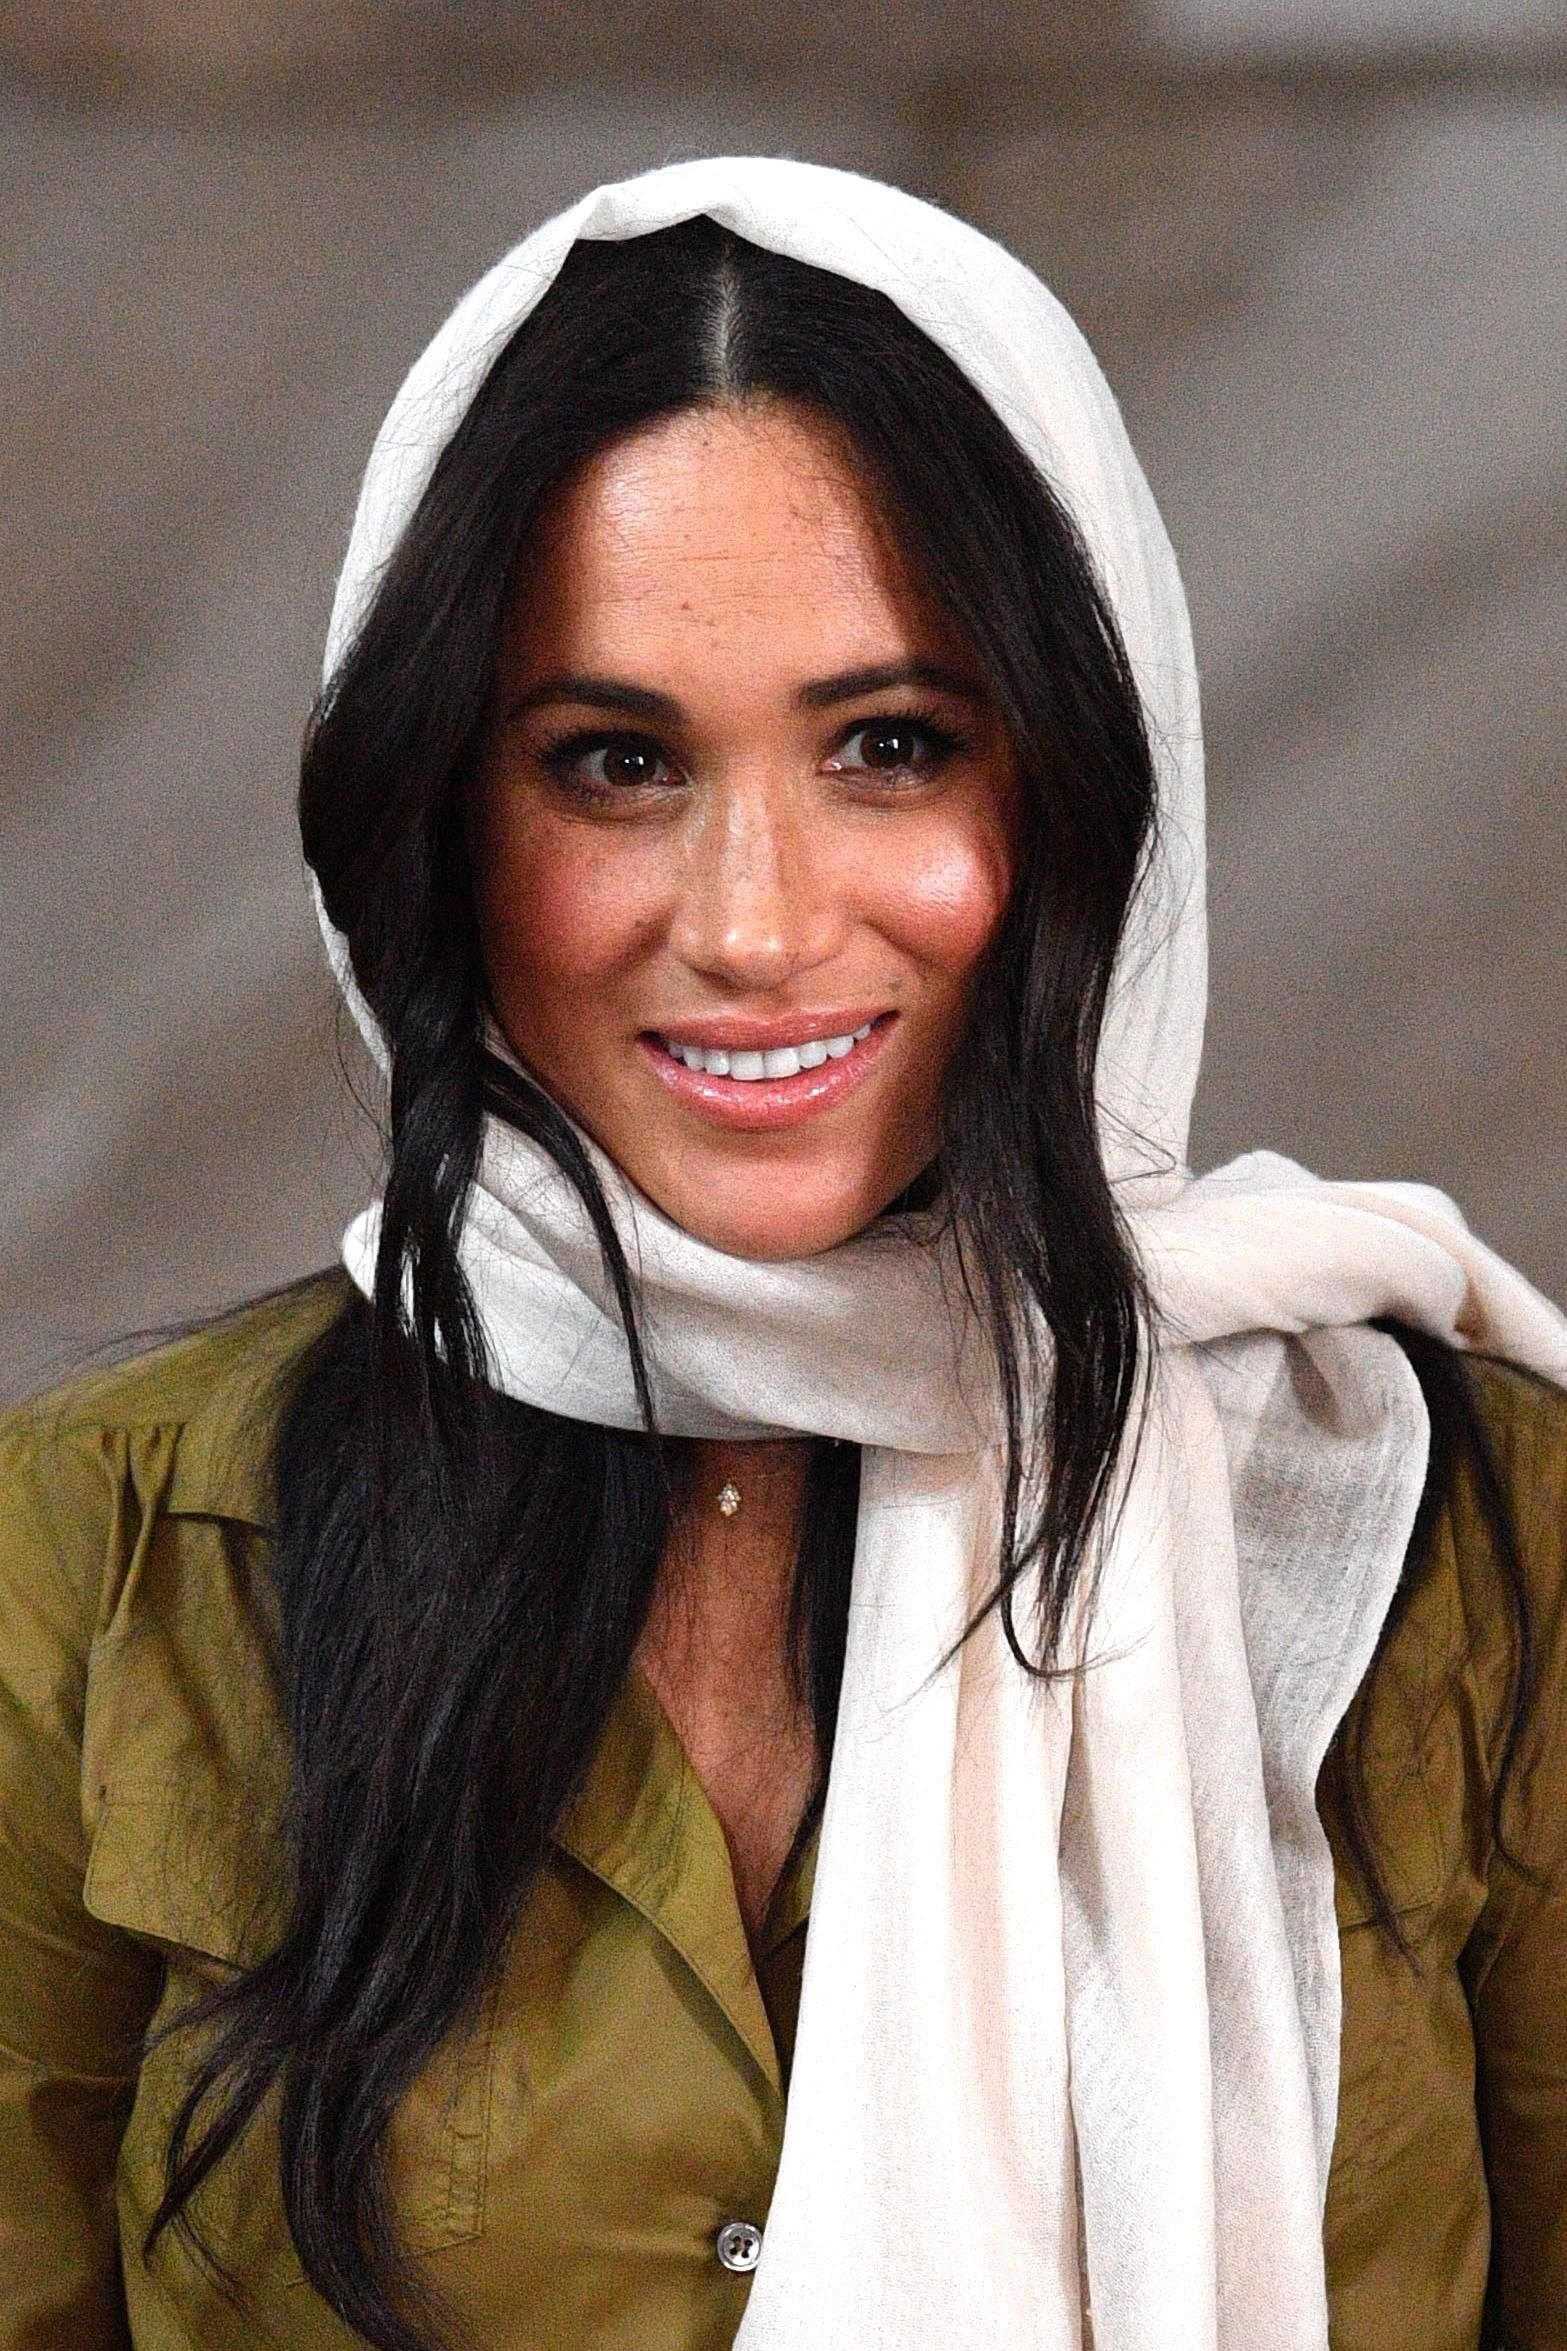 Meghan Markle visits Auwal Mosque on Heritage Day with Prince Harry, Duke of Sussex during their royal tour of South Africa on September 24, 2019 in Cape Town, South Africa.   Source: Getty Images